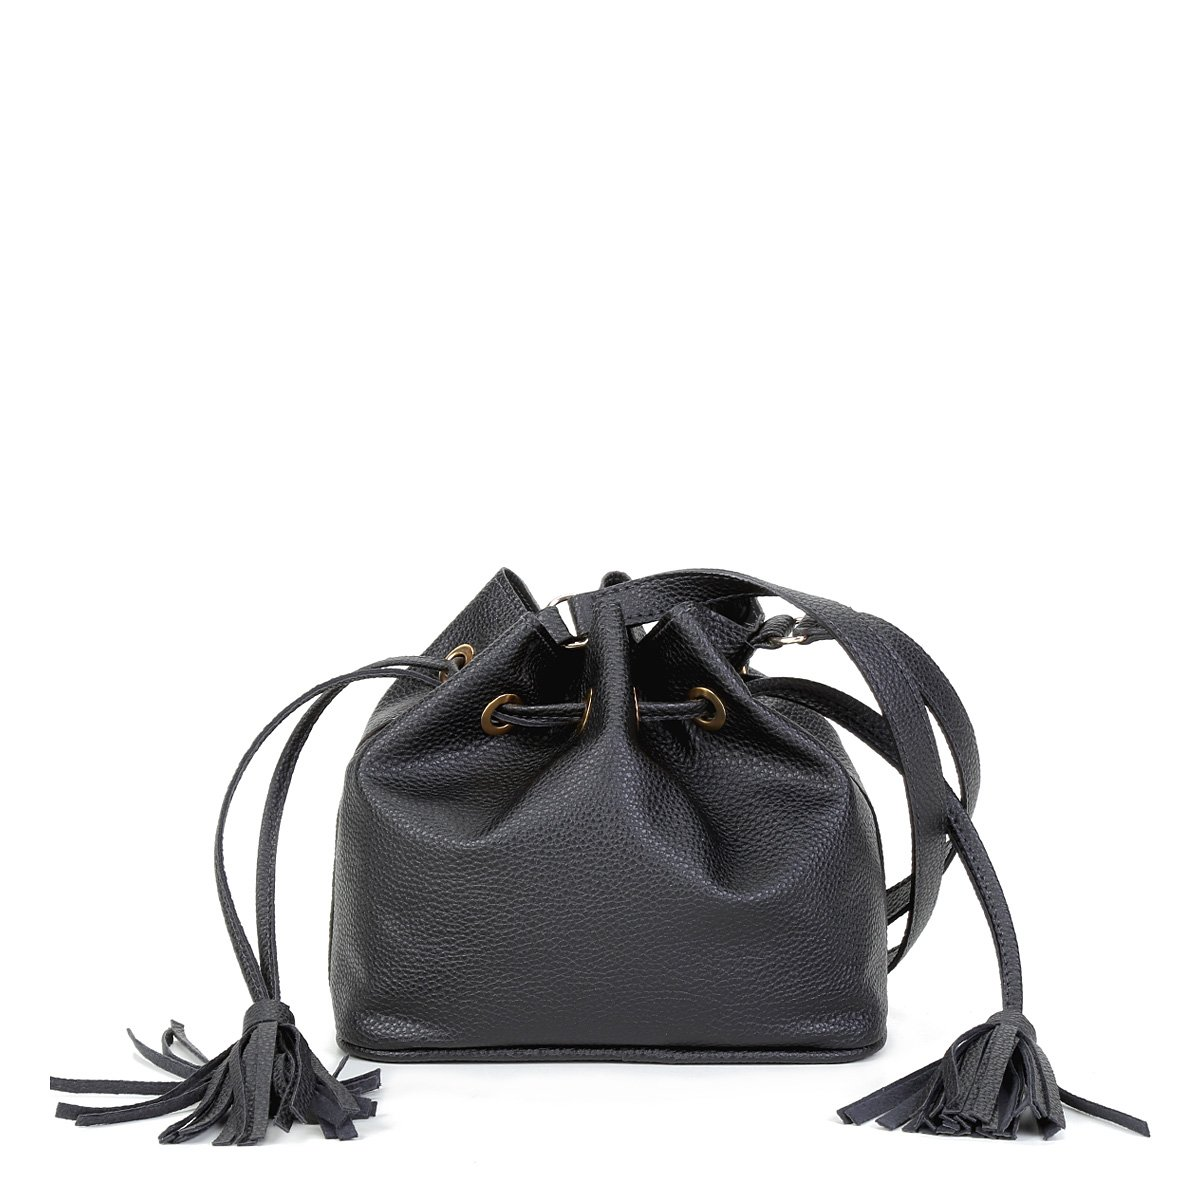 Bolsa Shoestock Bucket Lisa Feminina